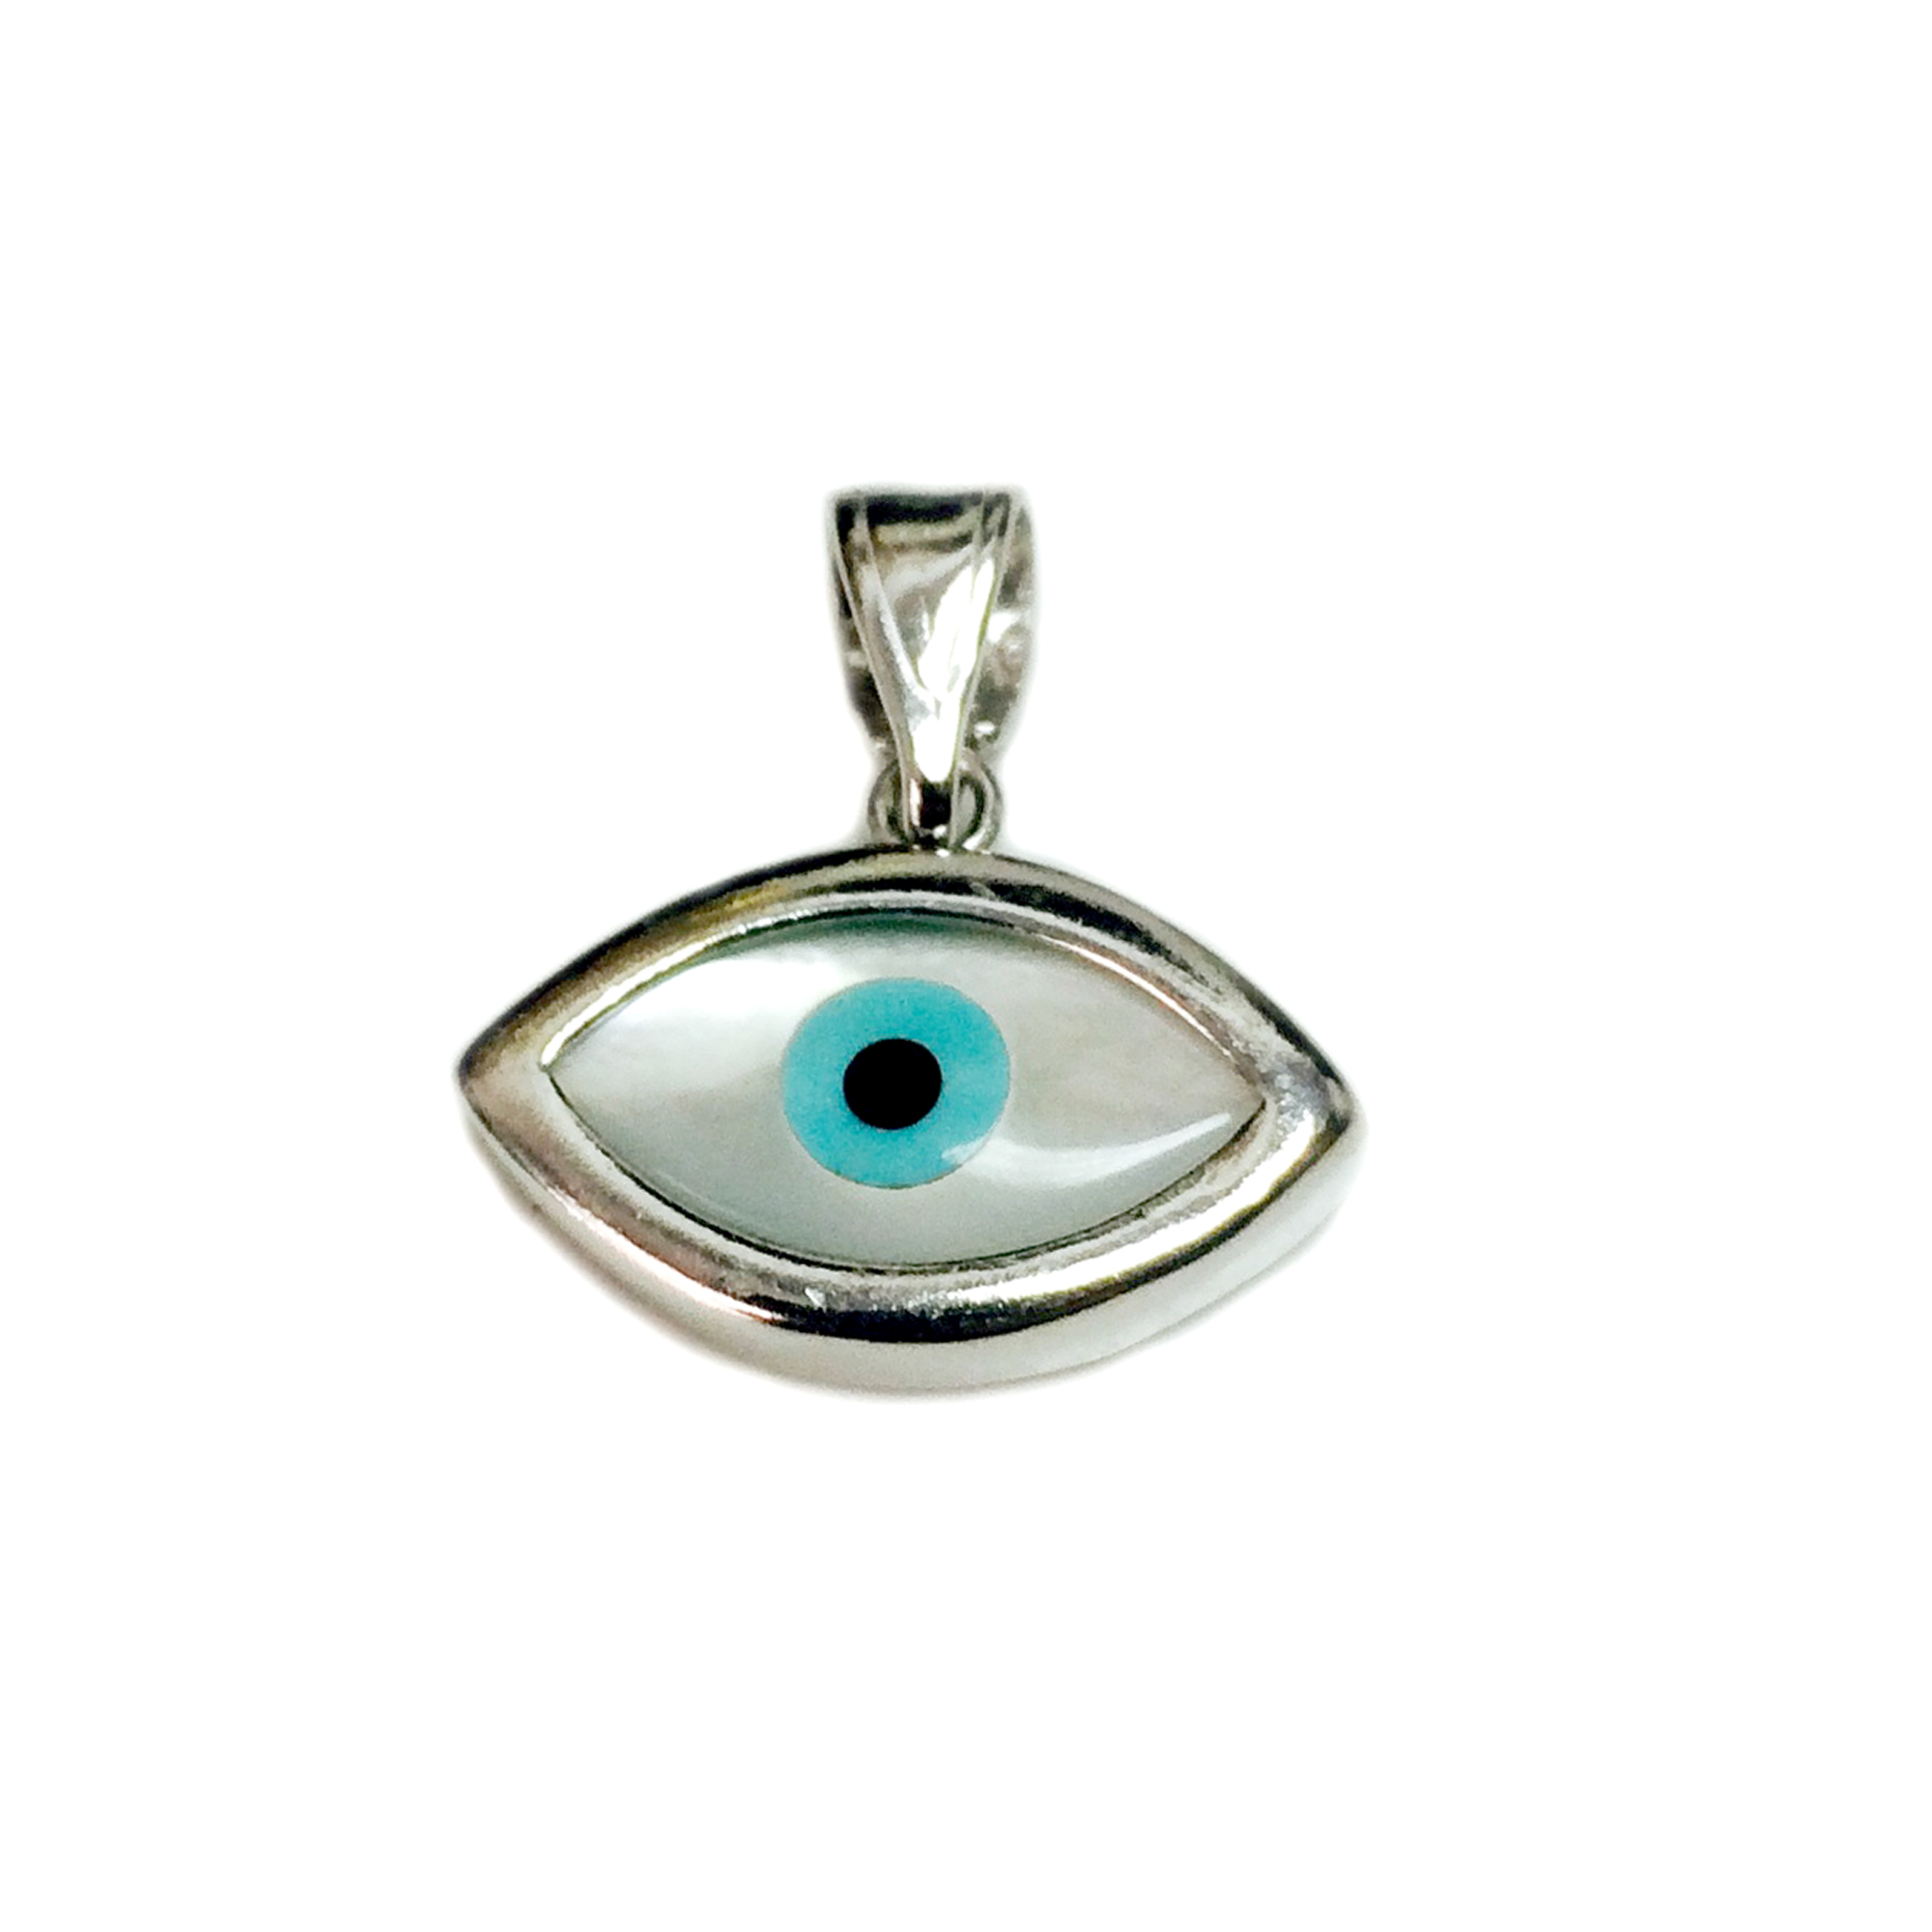 Sterling Silver Evil Eye Pendant Charm, 20 x 10mm Inspired from the of Greek ancient jewelry era, this sterling silver charm features the Evil Eye motif, also known as  Mati  in Greek, bordering a beautiful  glass Evil Eye. Measuring at 20x10 mm diameter, this Greek evil eye is rhodium plated for better tarnish resistance.